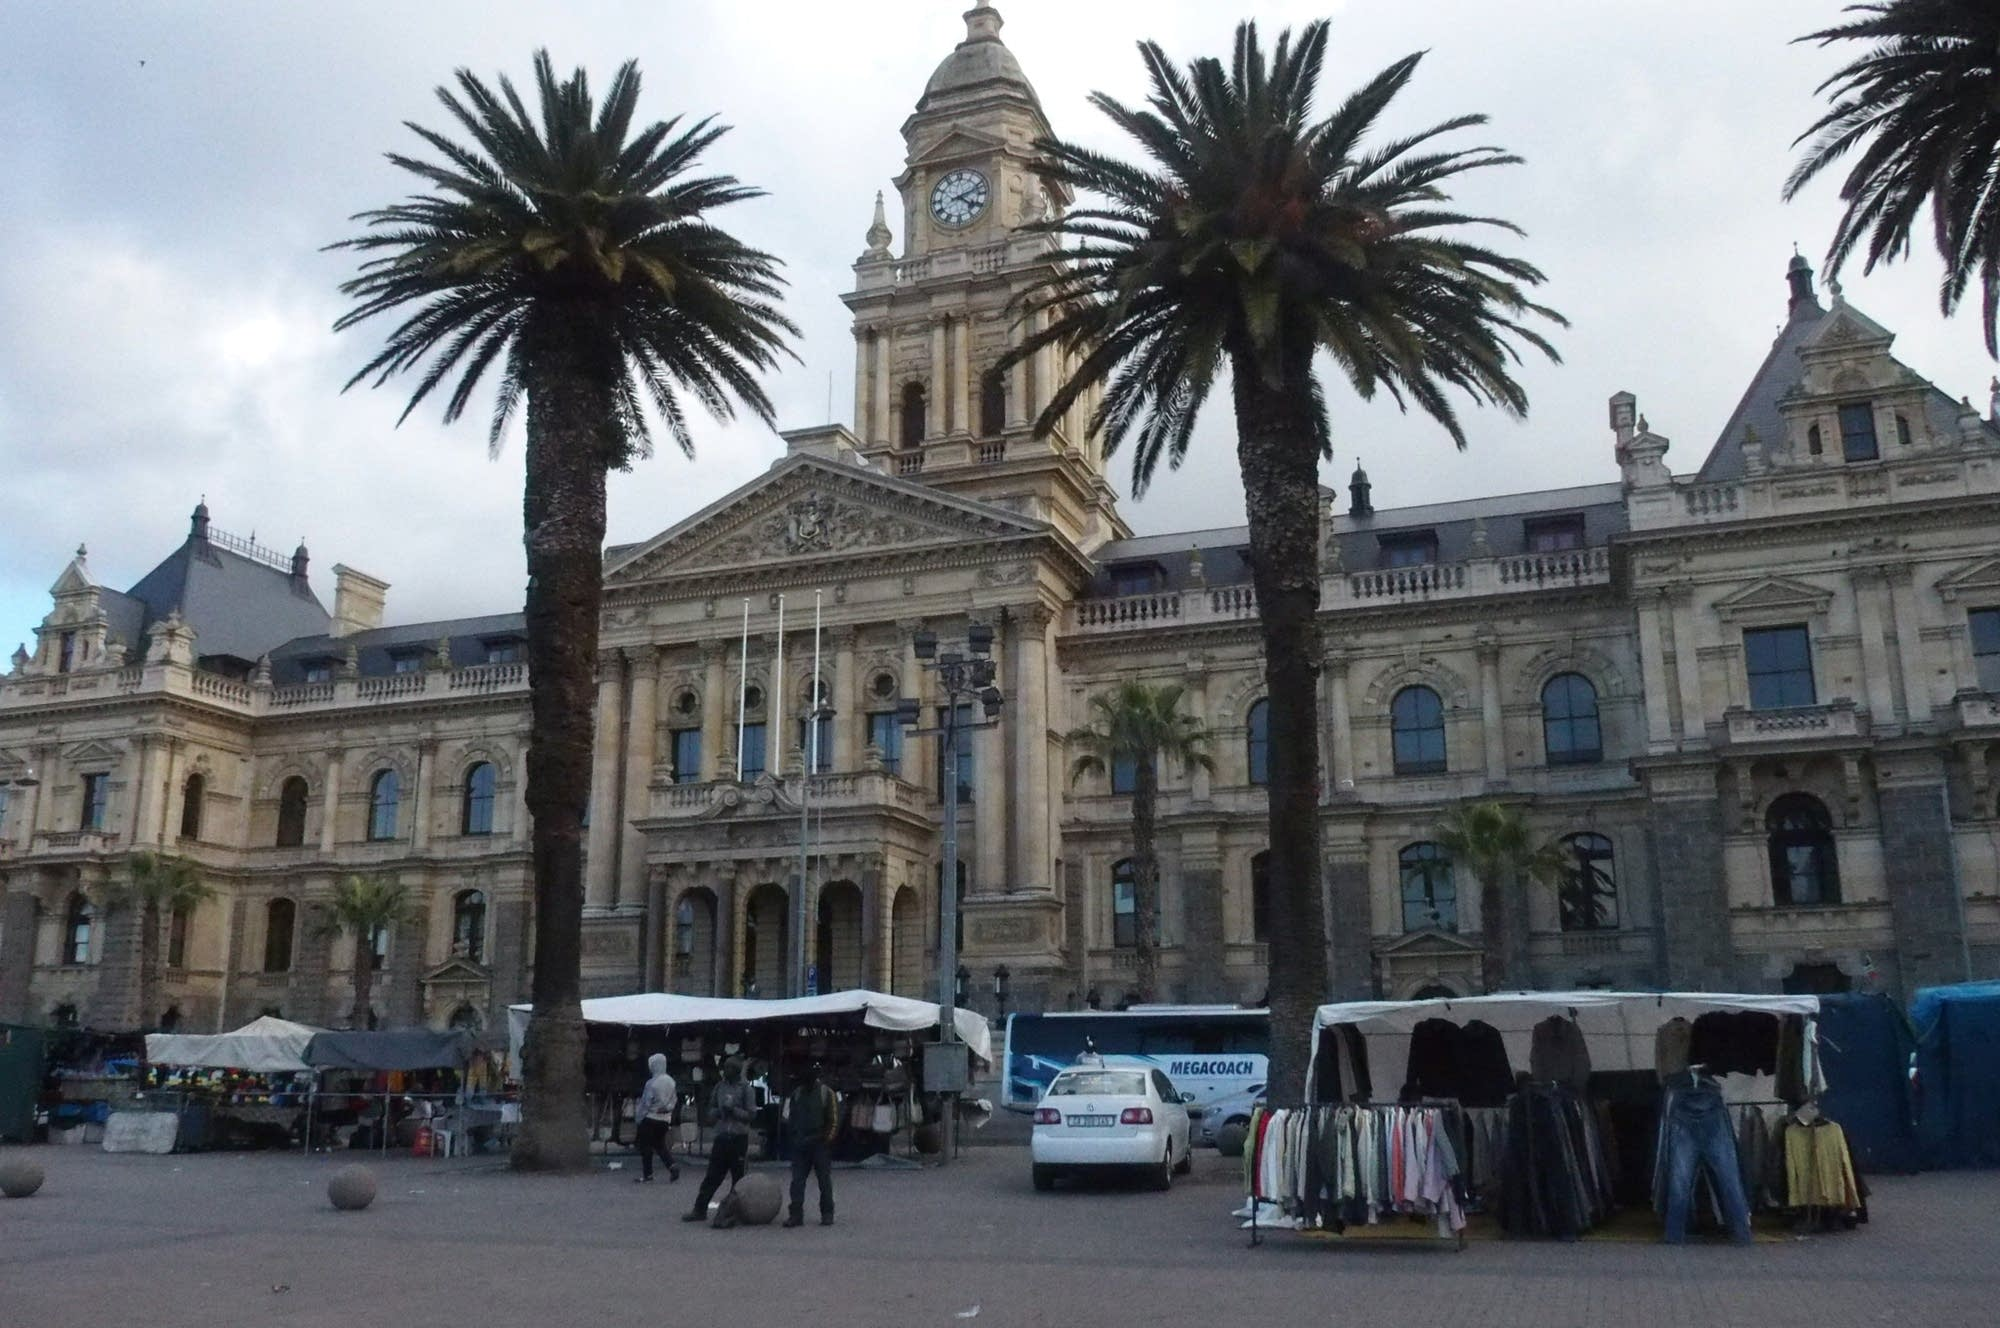 Cape Town's newly refurbished City Hall.